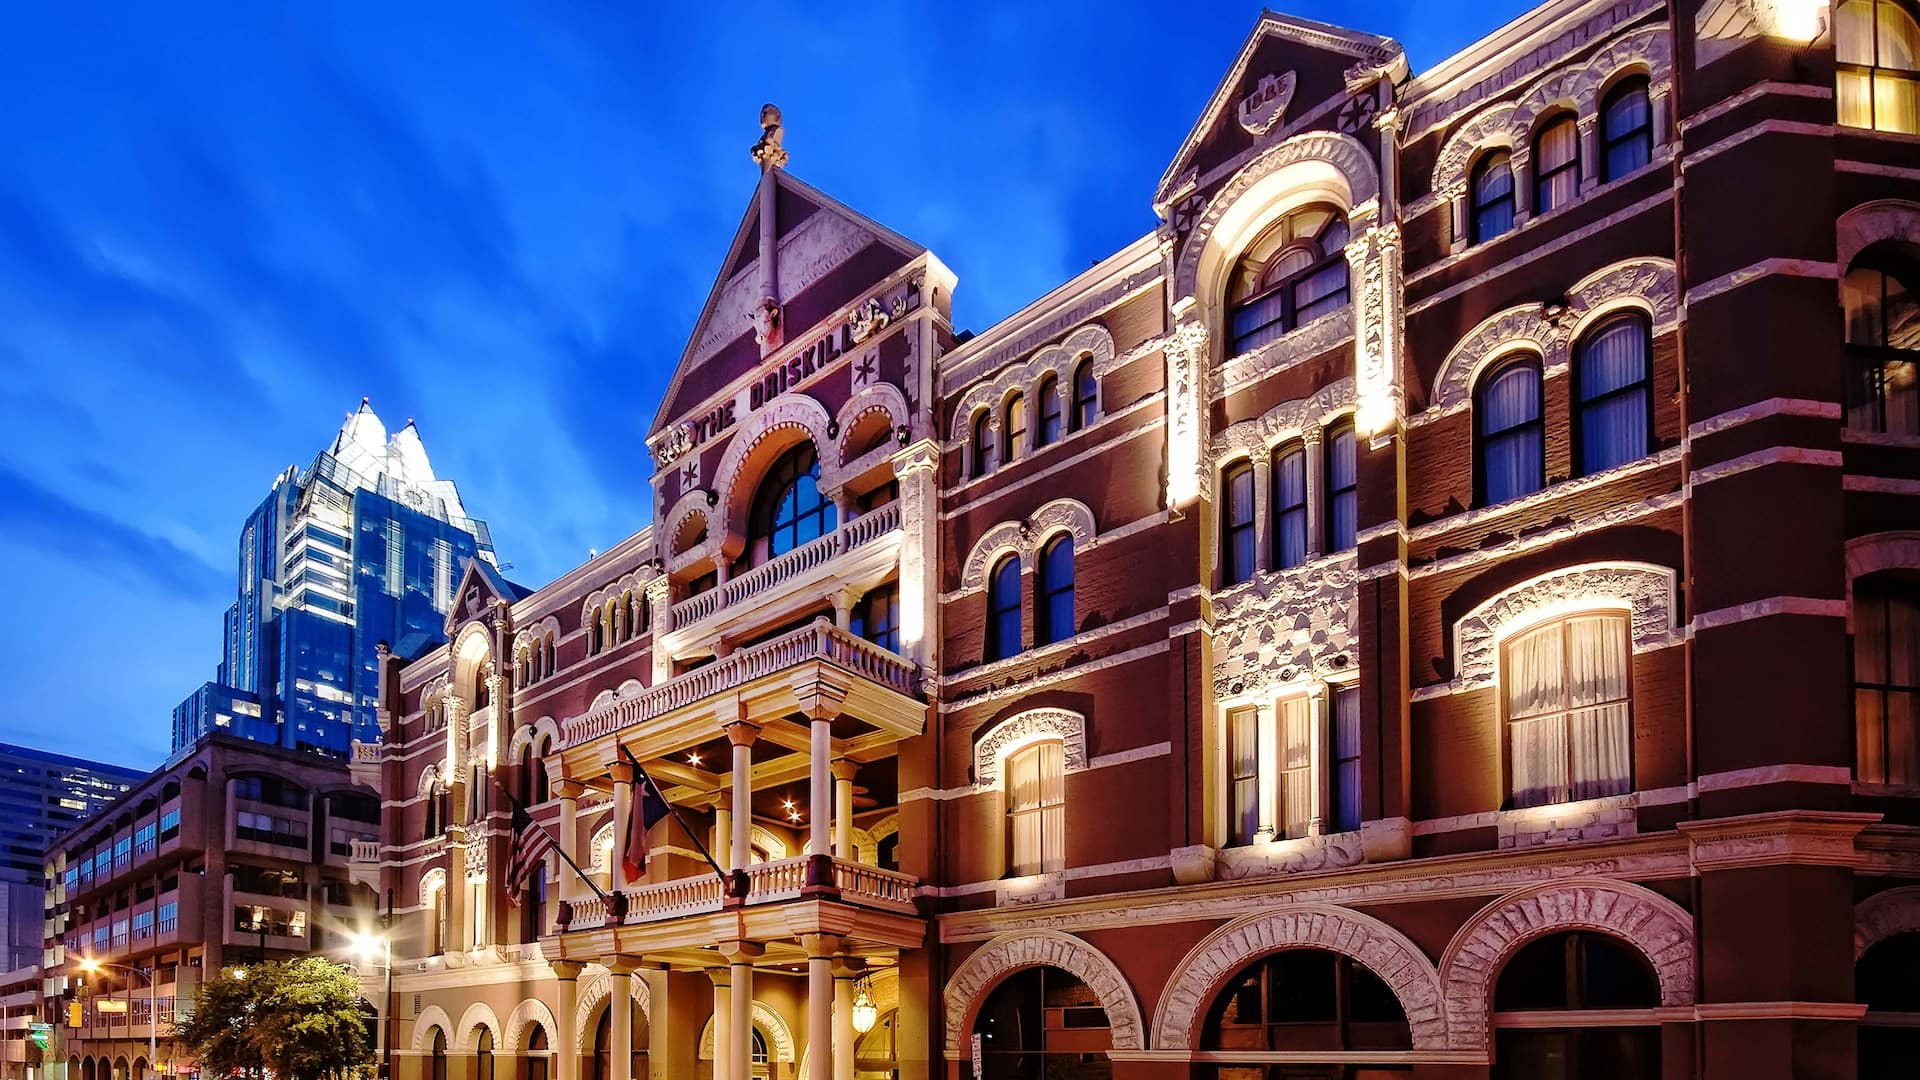 Austin's Iconic Hotel on 6th Street The Driskill